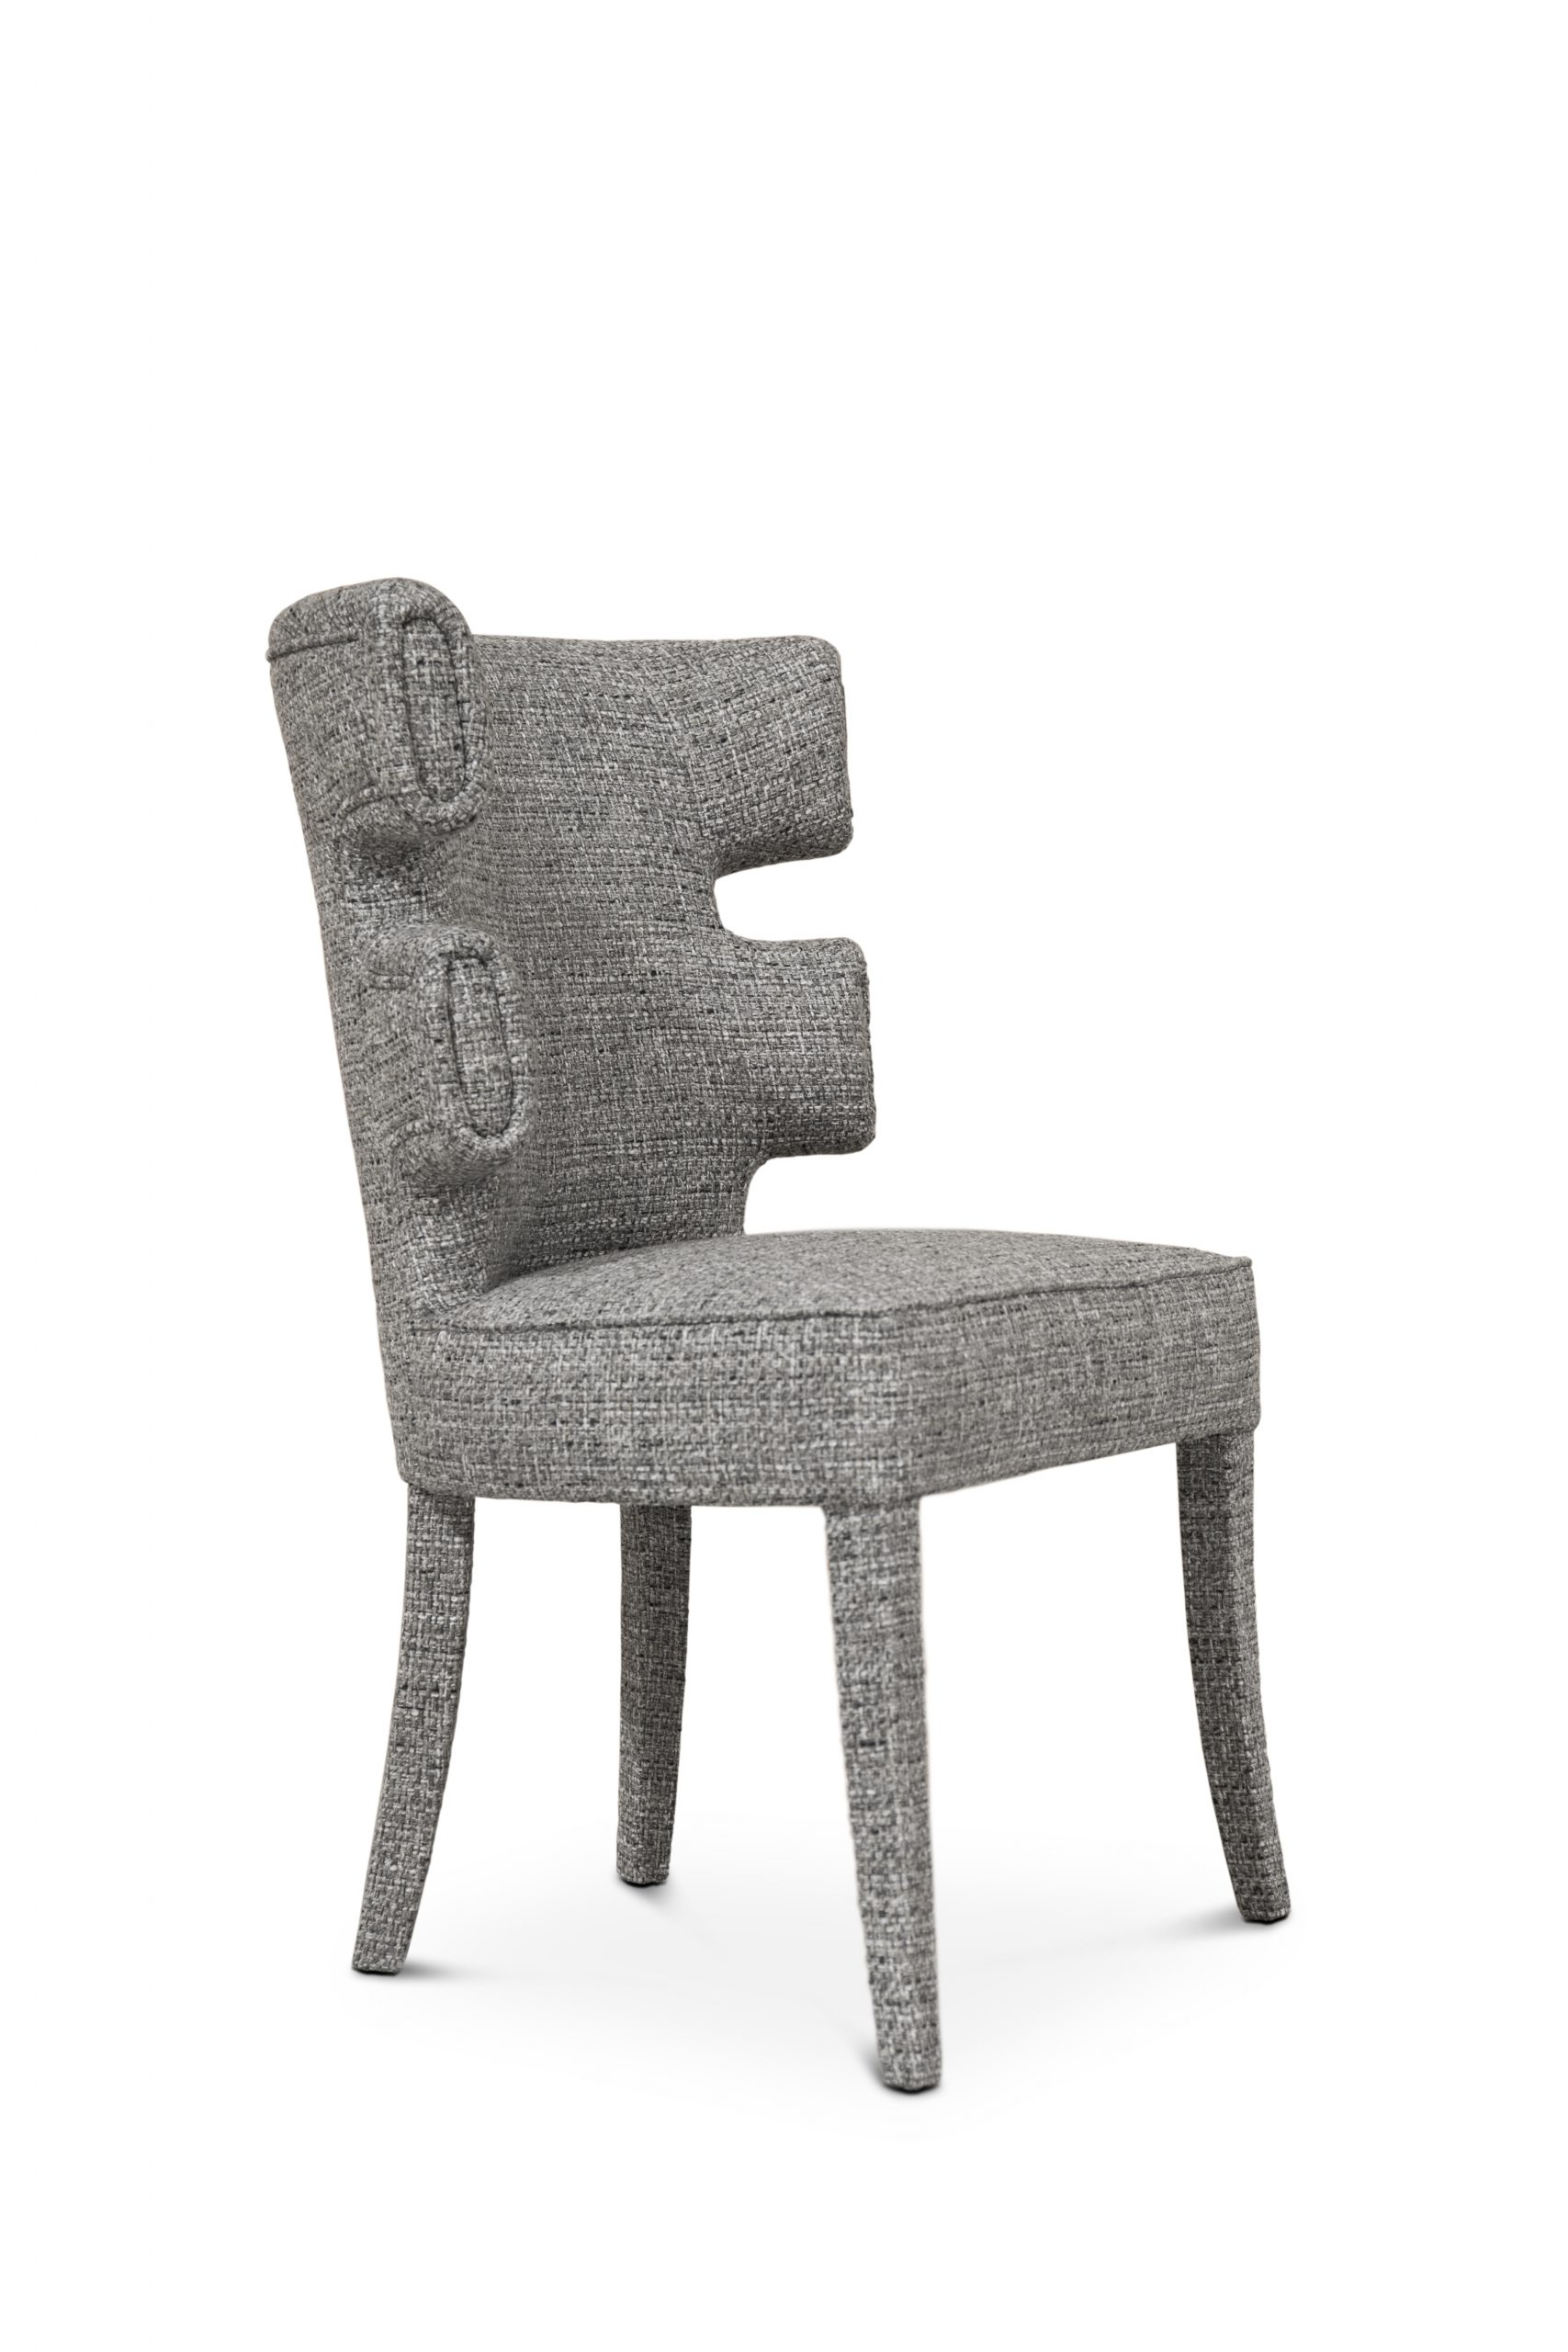 NYC Interior Designers, A List Of The Top 10  nyc interior designers NYC Interior Designers, A List Of The Top 10 gaia dining chair 1 scaled